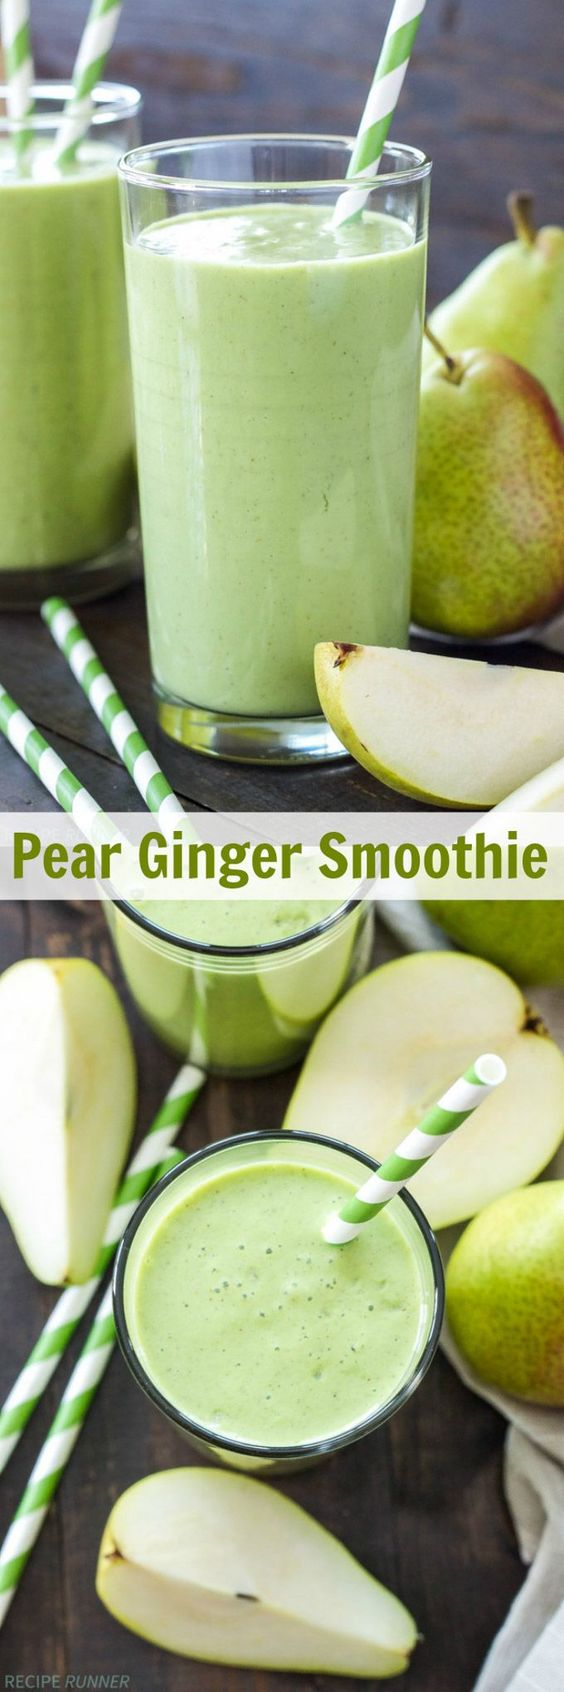 Pear Ginger Smoothie | This pear ginger smoothie is full of fiber, protein and greens! It's the perfect healthy way to start the day! | @andwhatelse